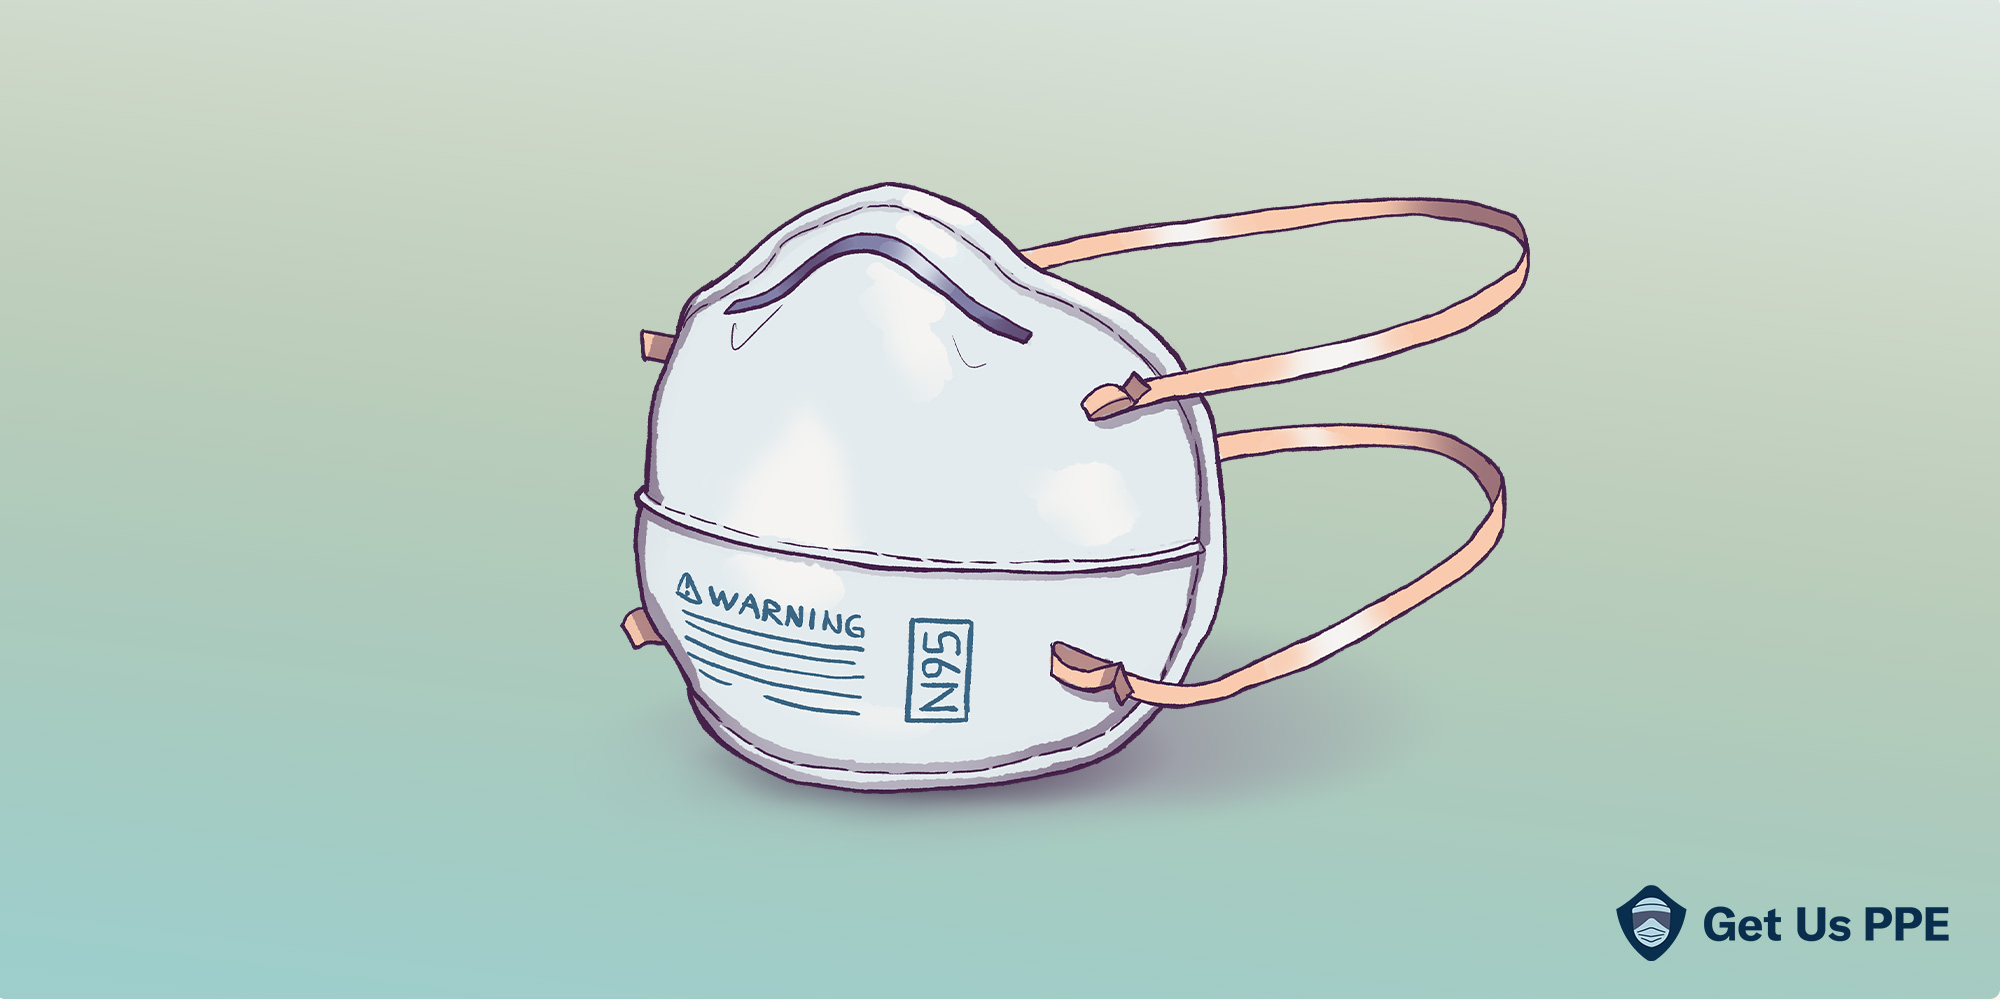 N95 mask illustration re supply-demand disconnect